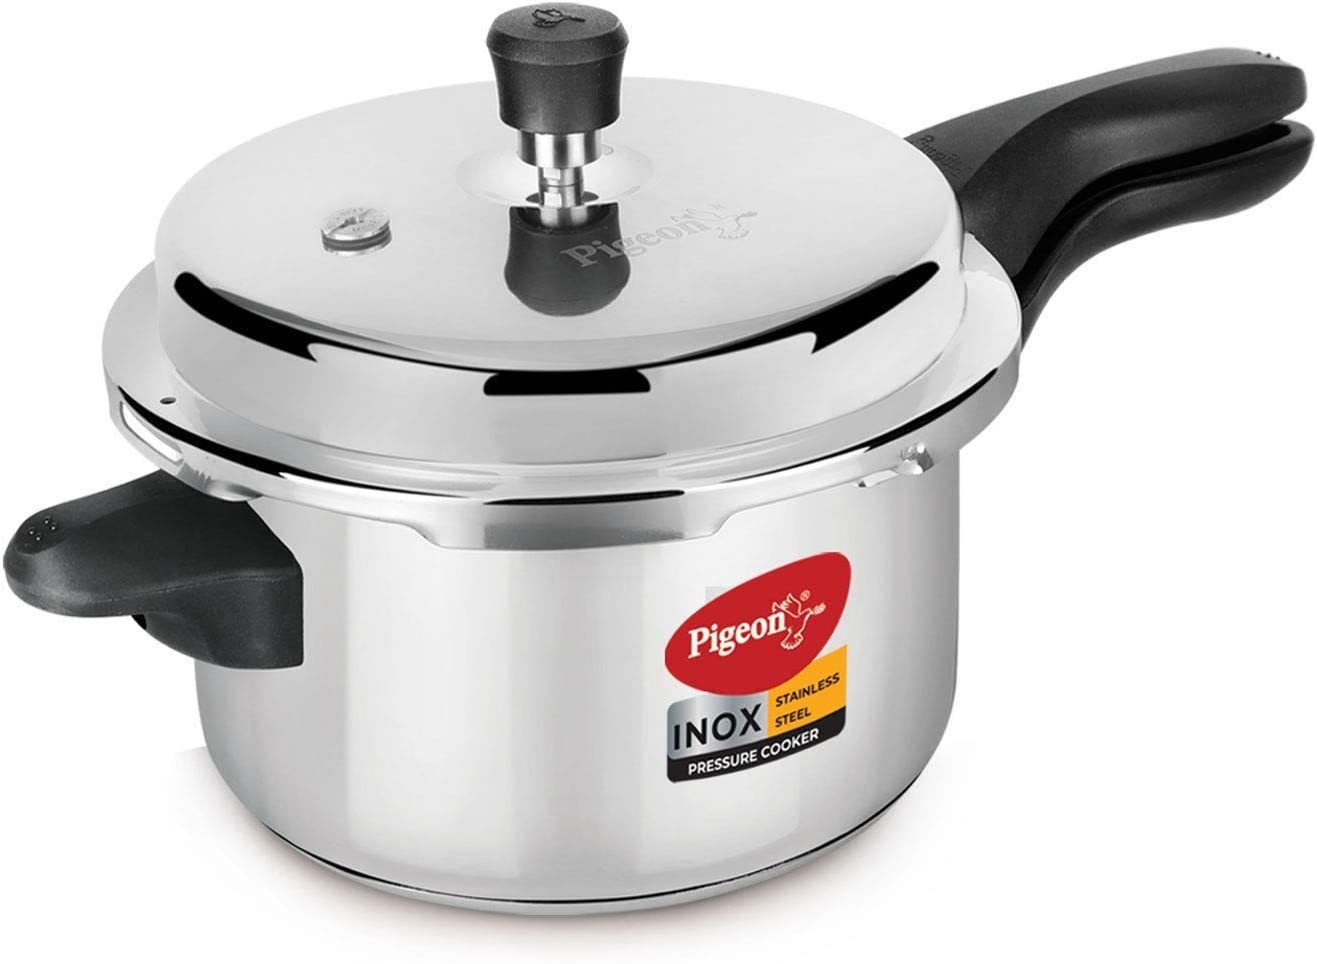 Pigeon - Inox Stainless Steel Outer Lid Induction Base Pressure Cooker - Cook delicious food in less time: soups, rice, legumes, and more - 5 Liter